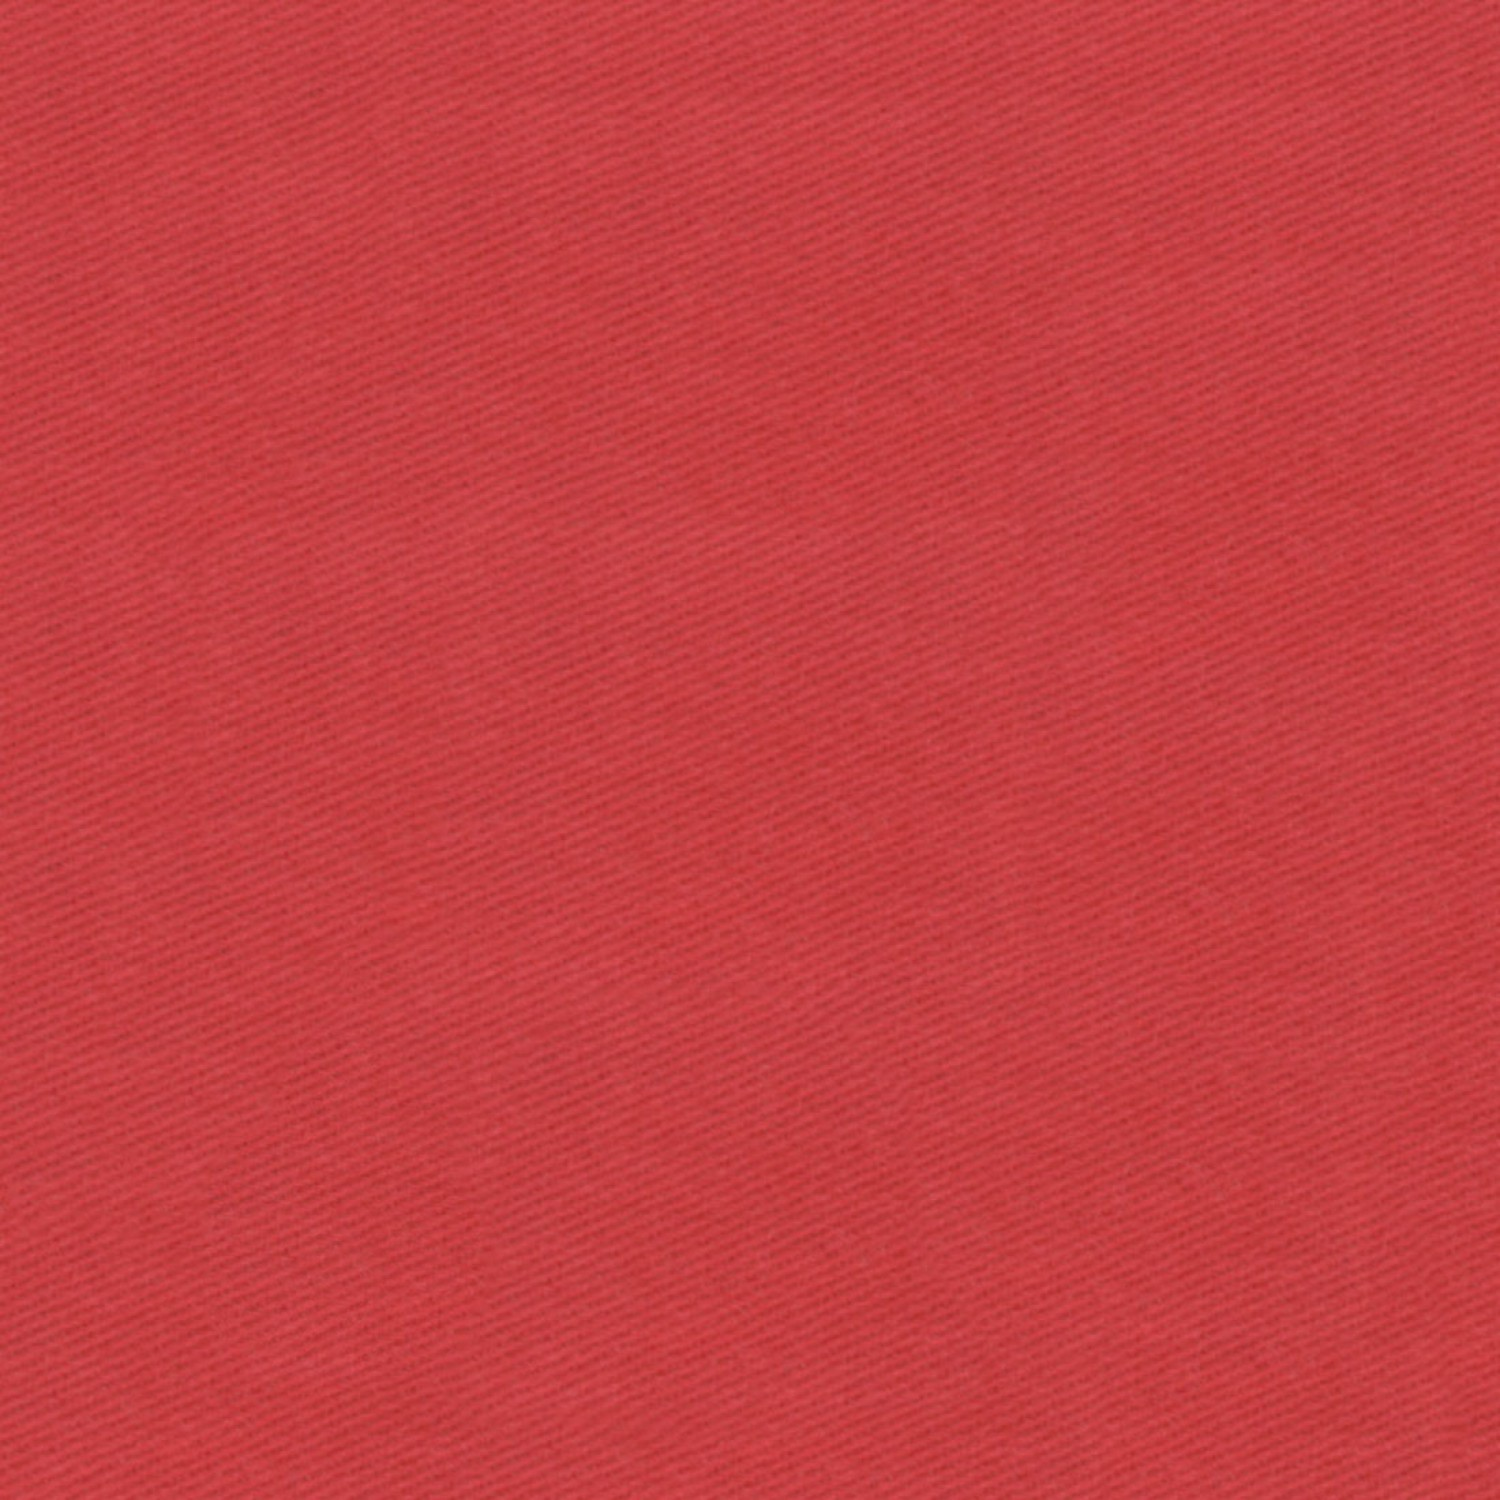 "Milestone Twill Chili Red Fabric 7oz - 60"" Wide x Per Yard"